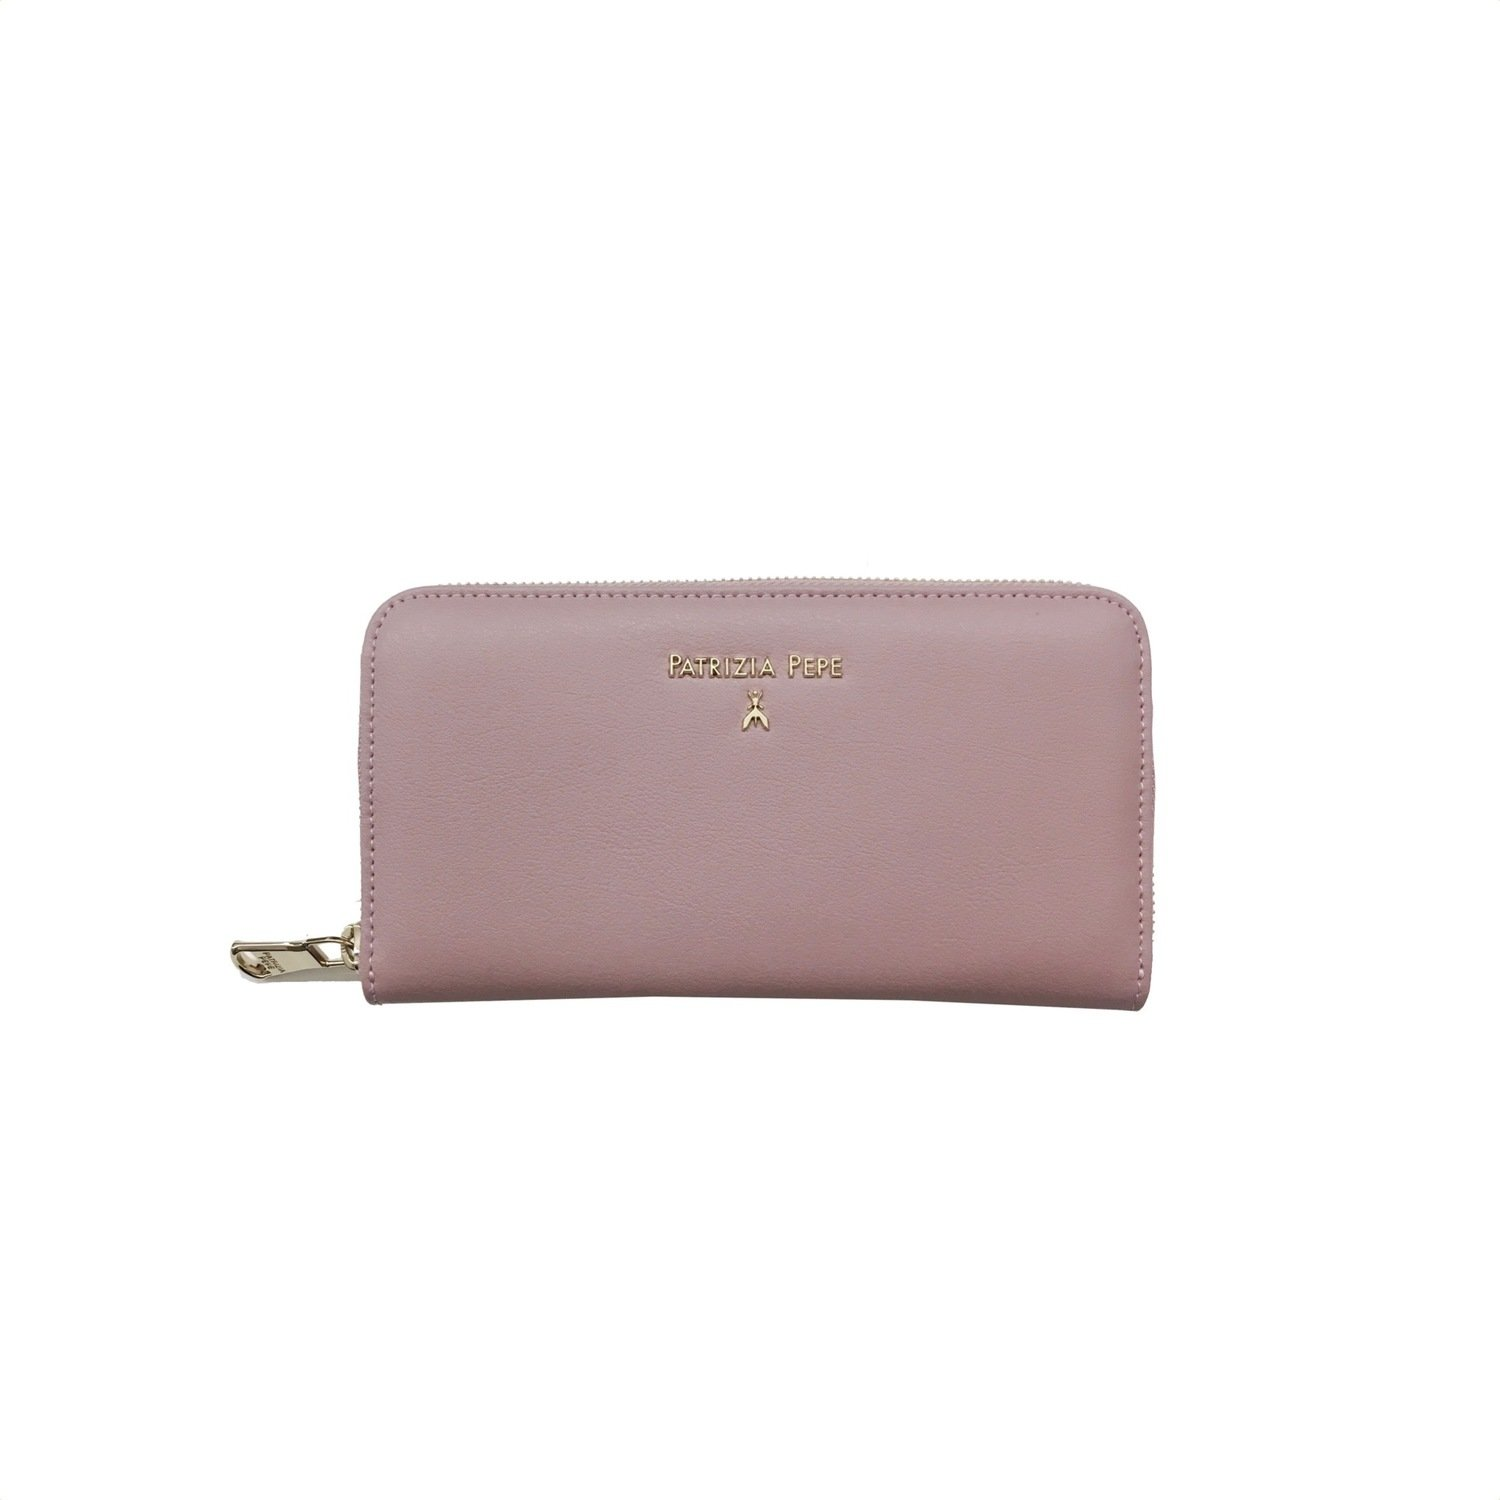 PATRIZIA PEPE - Portafoglio zip around in pelle - Cloud Rose